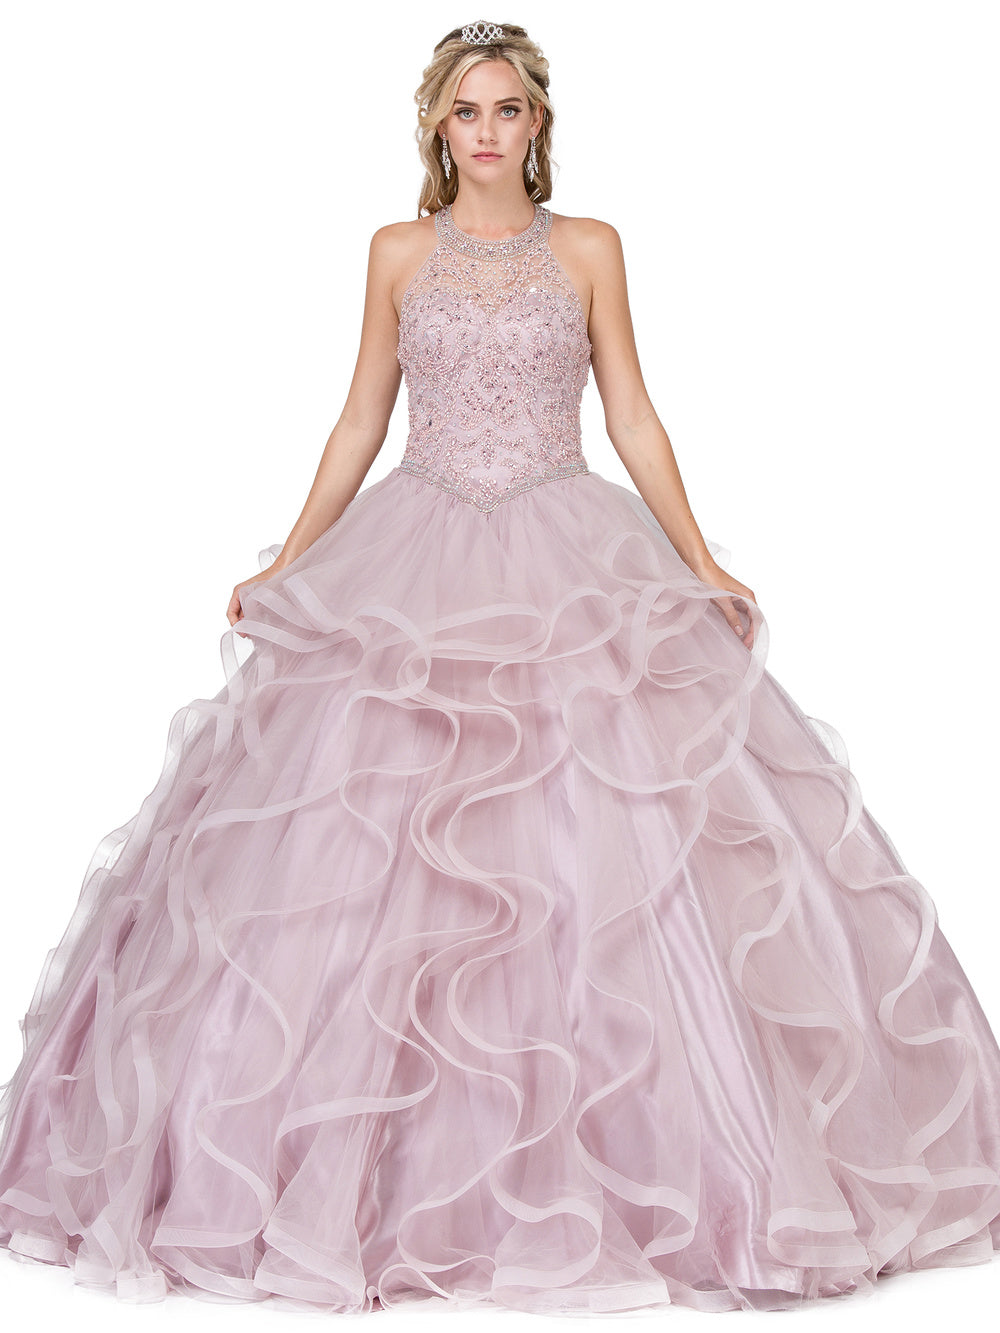 Dress2018 QUINCEANERA DQ1285